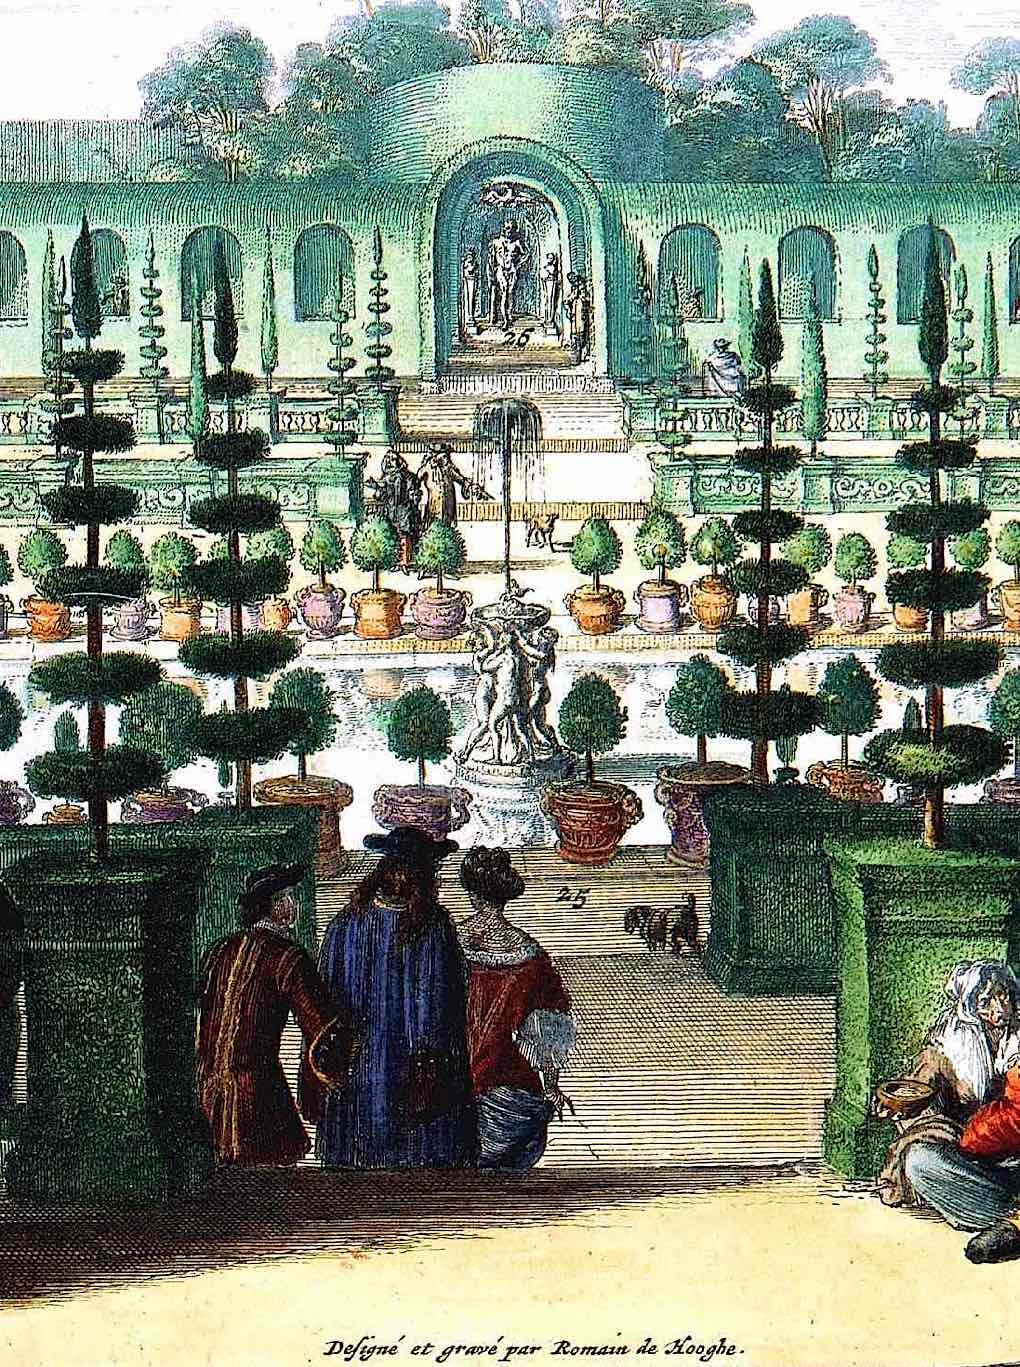 part of the 1680 royal Dutch gardens in an old color illustration